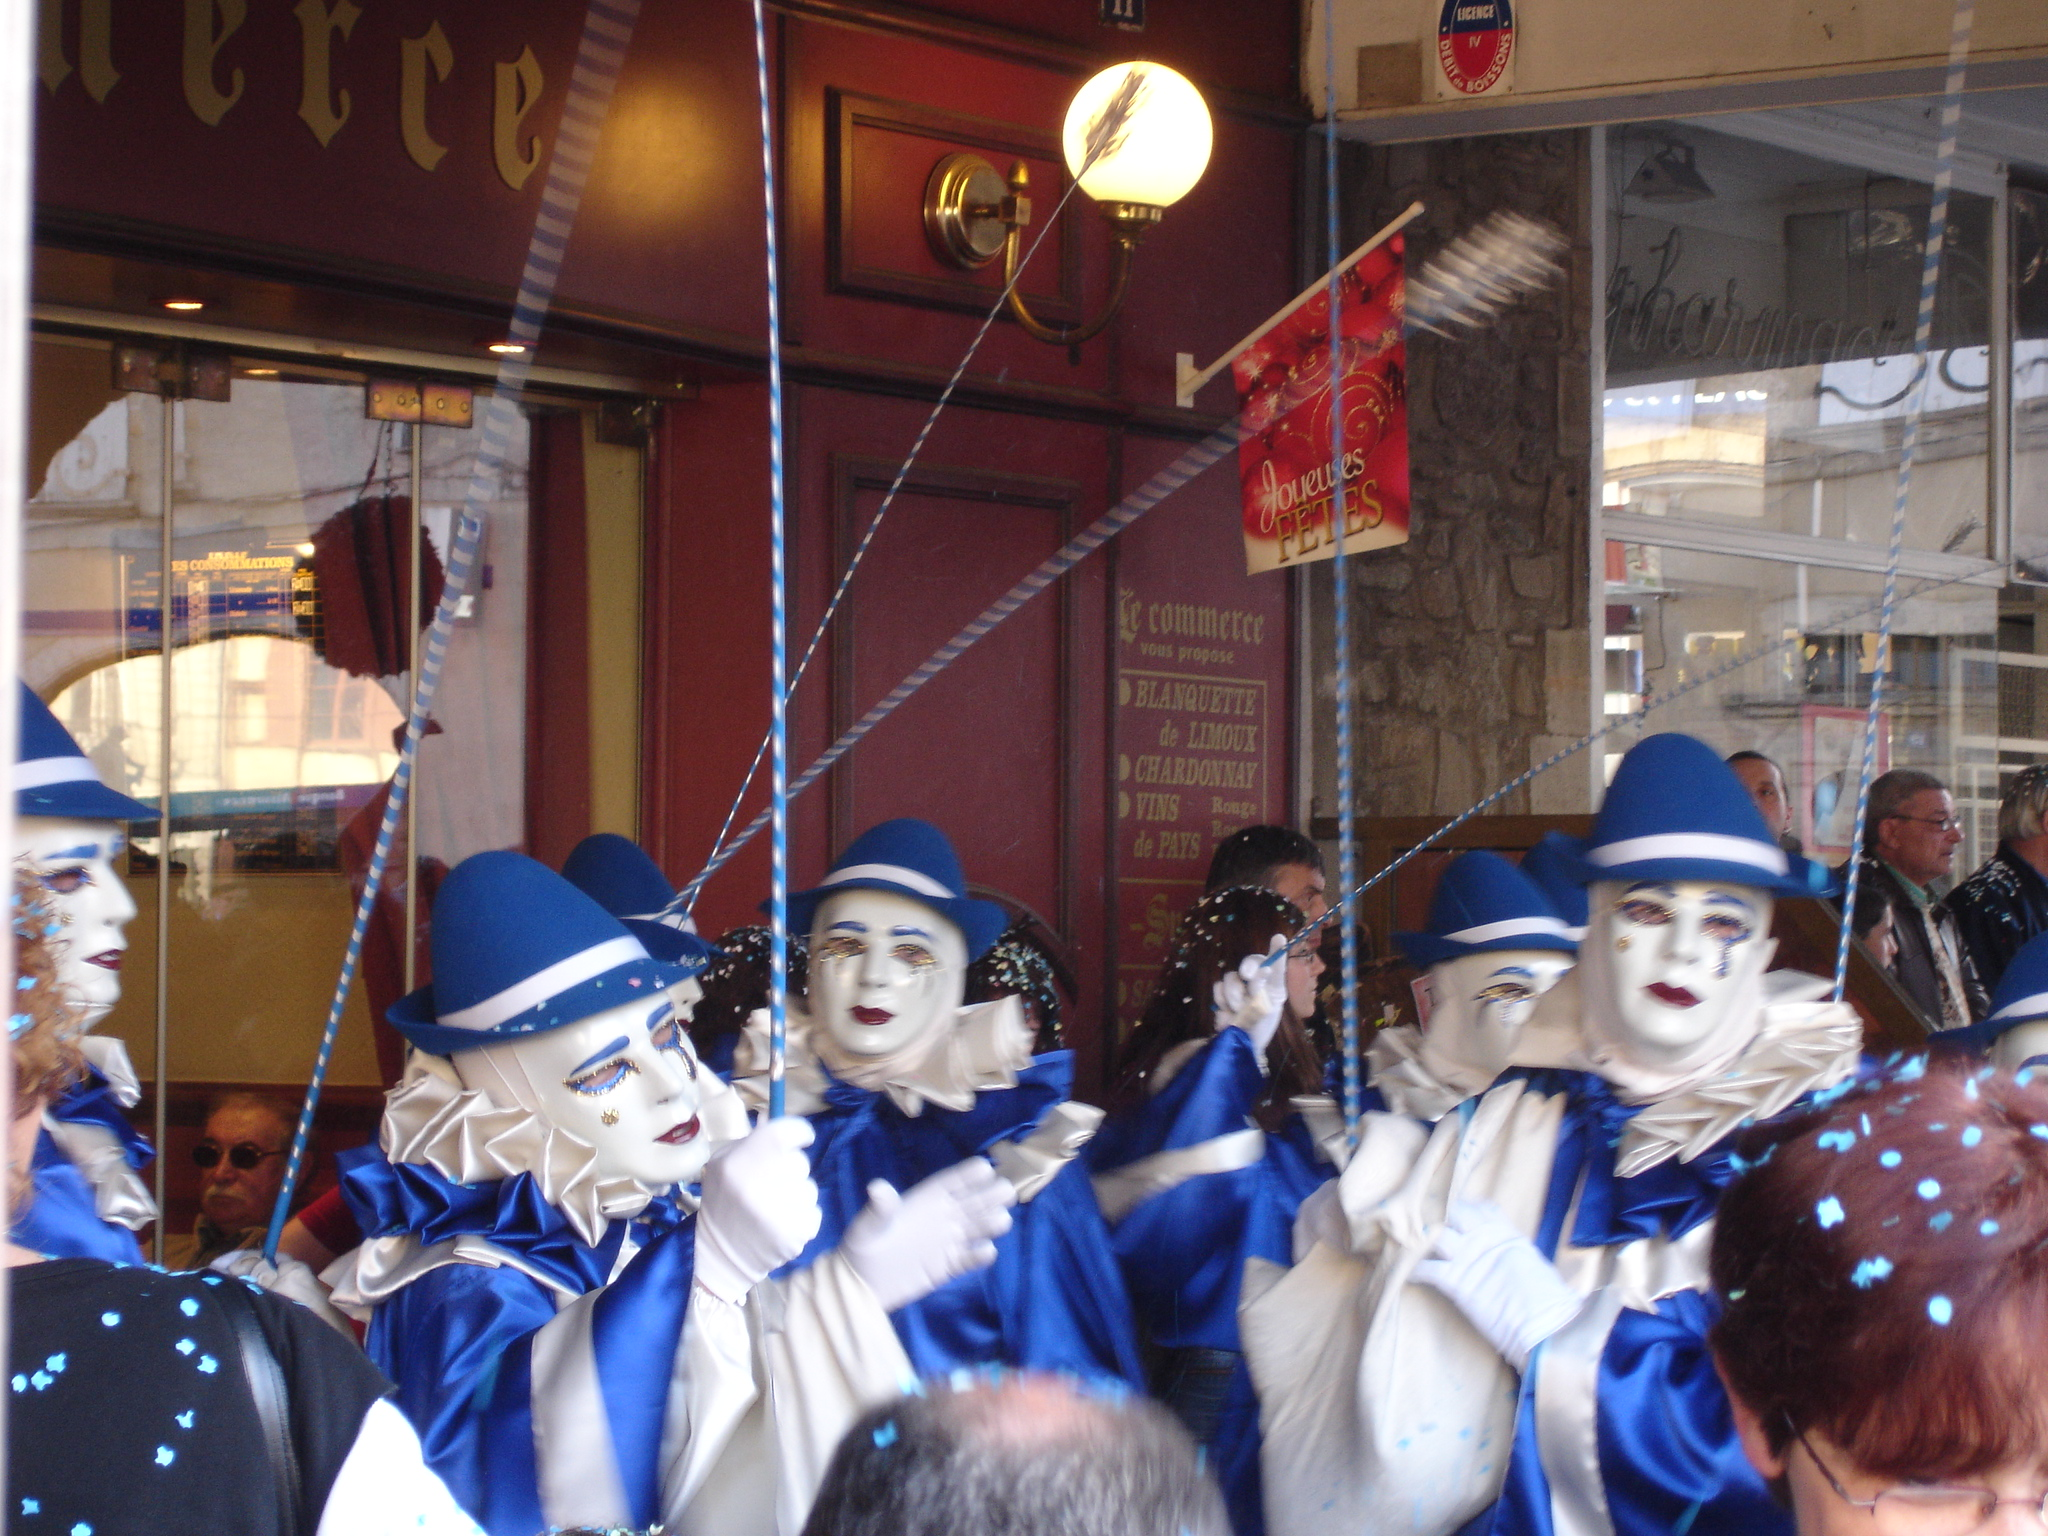 http://upload.wikimedia.org/wikipedia/commons/b/bb/France-Carnaval_de_Limoux2.jpg